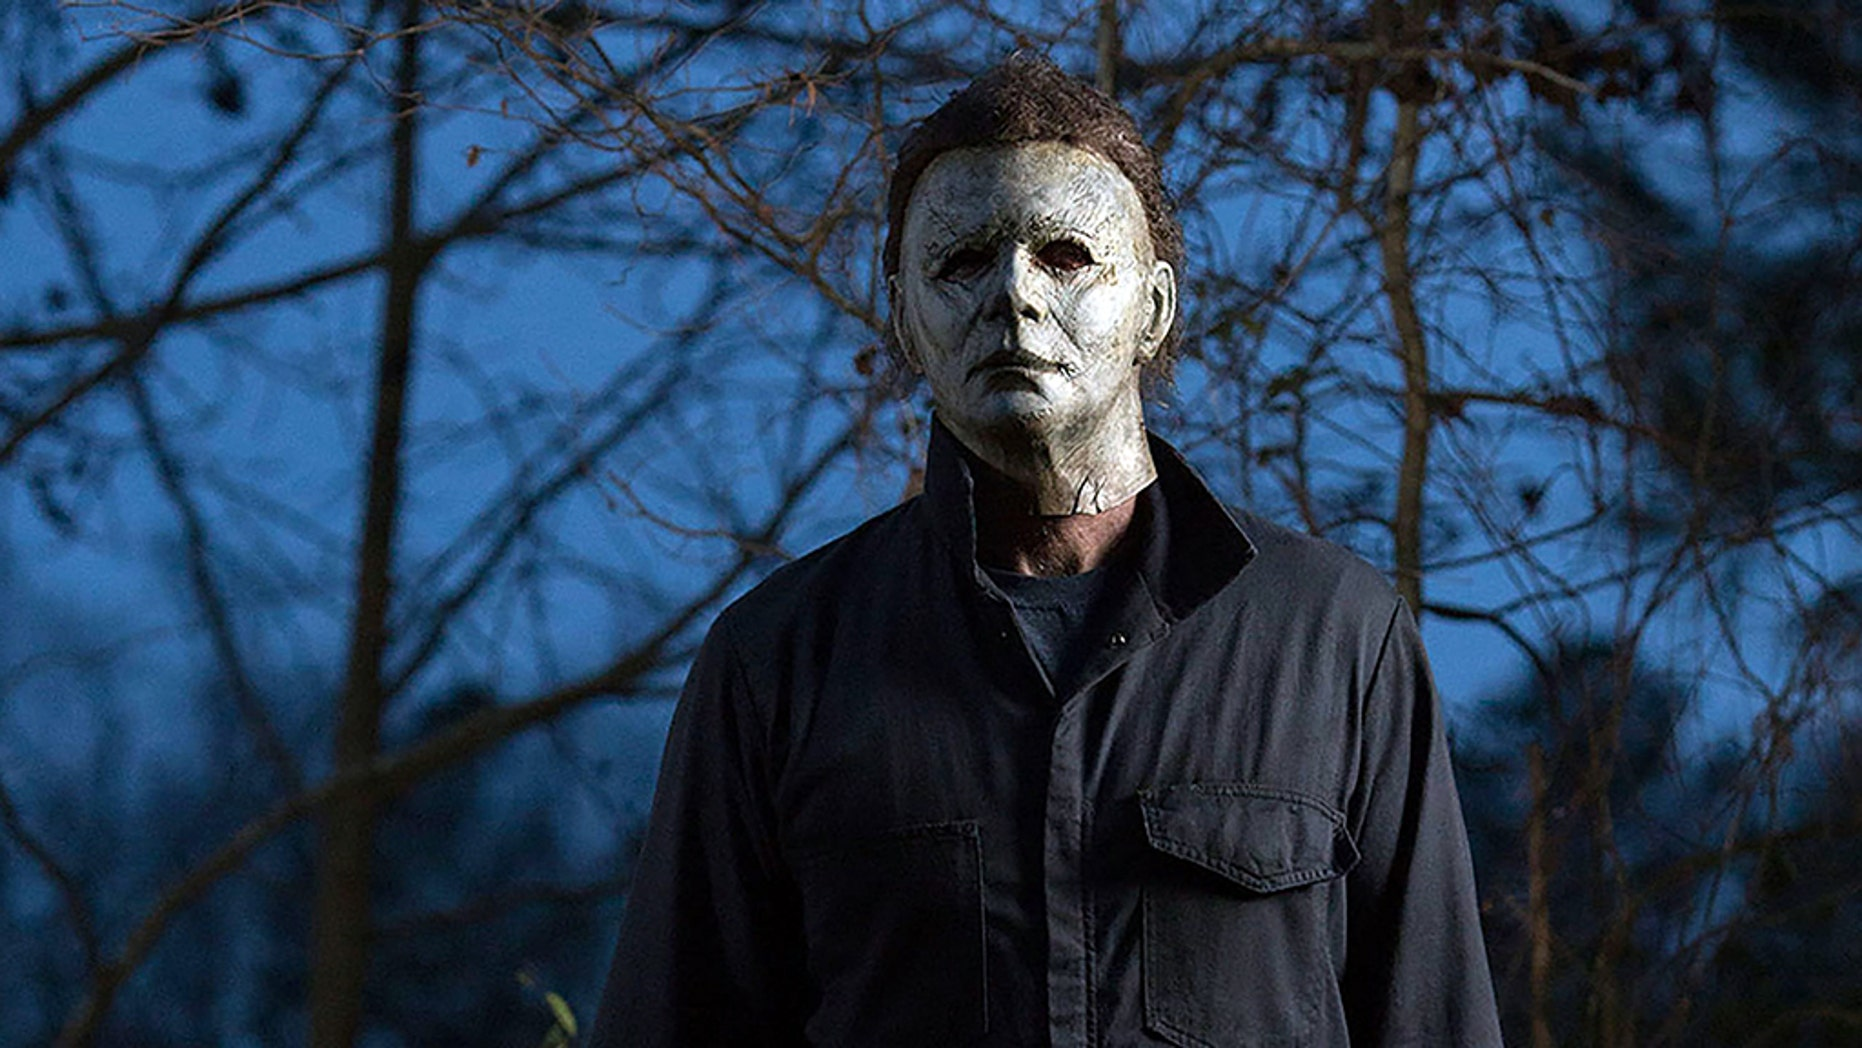 'Halloween' helped shatter the October box office record.